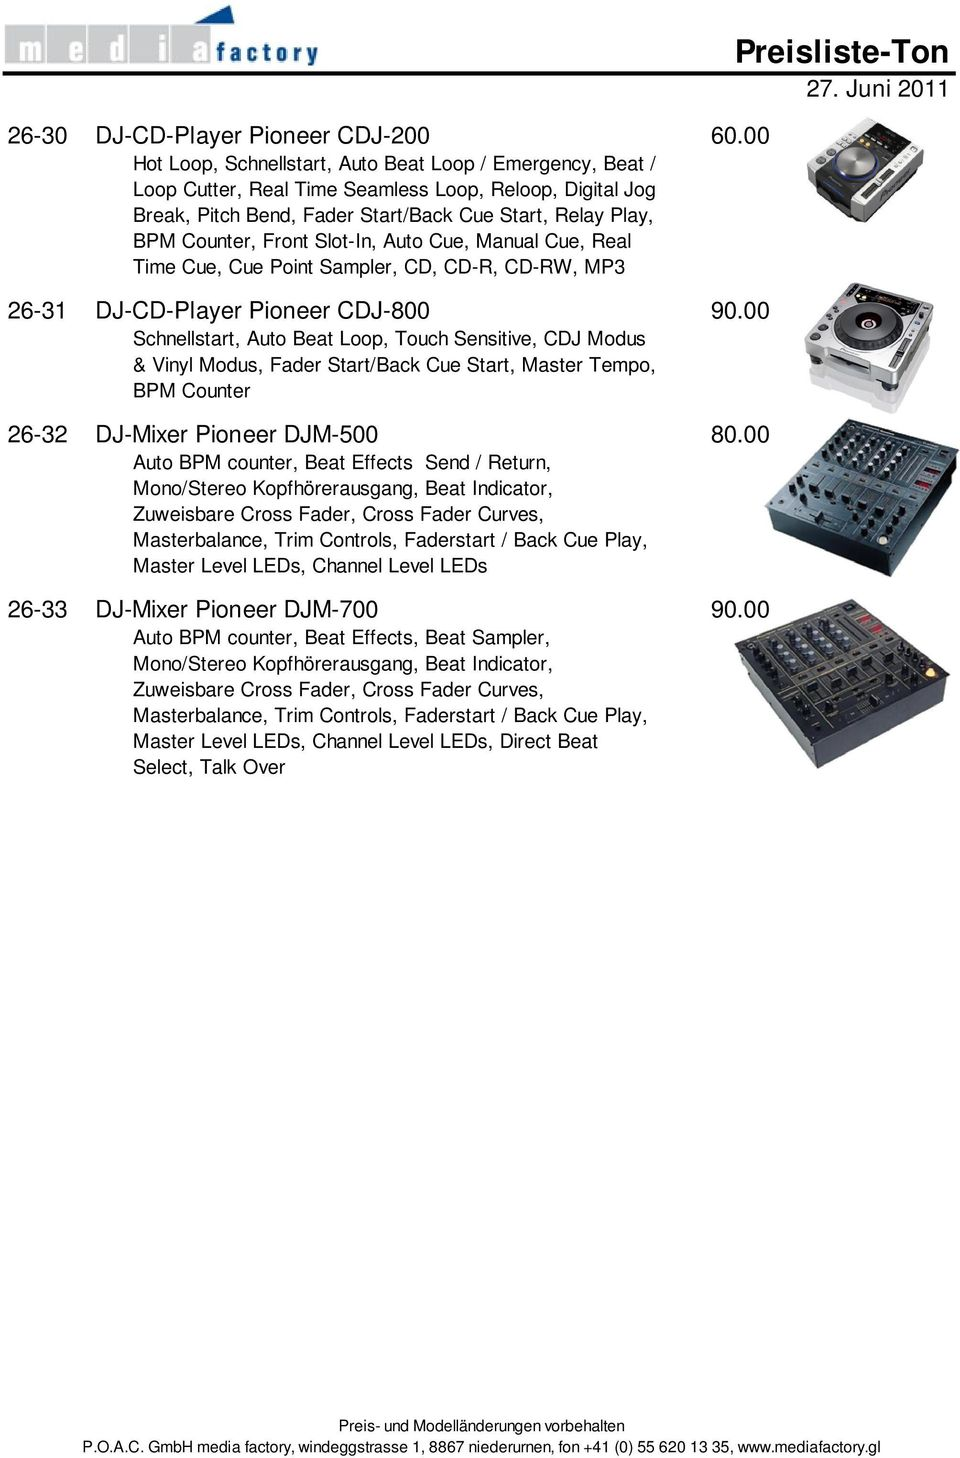 Slot-In, Auto Cue, Manual Cue, Real Time Cue, Cue Point Sampler, CD, CD-R, CD-RW, MP3 26-31 DJ-CD-Player Pioneer CDJ-8 9.